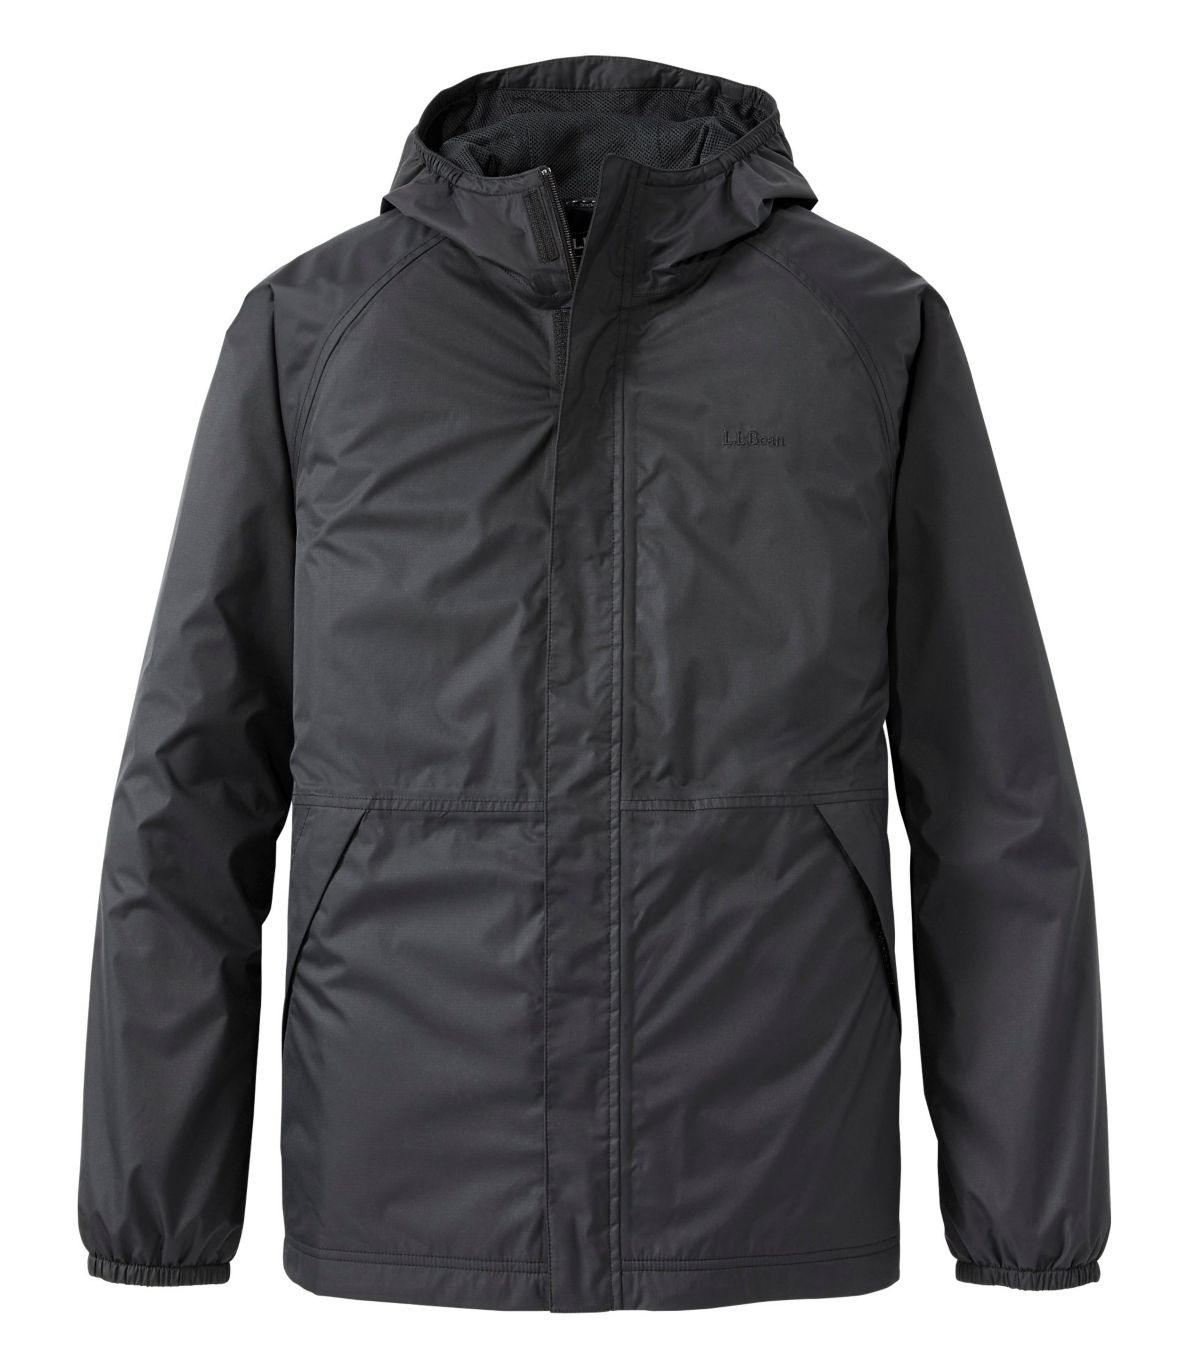 Men's Waterproof Windbreaker Jacket